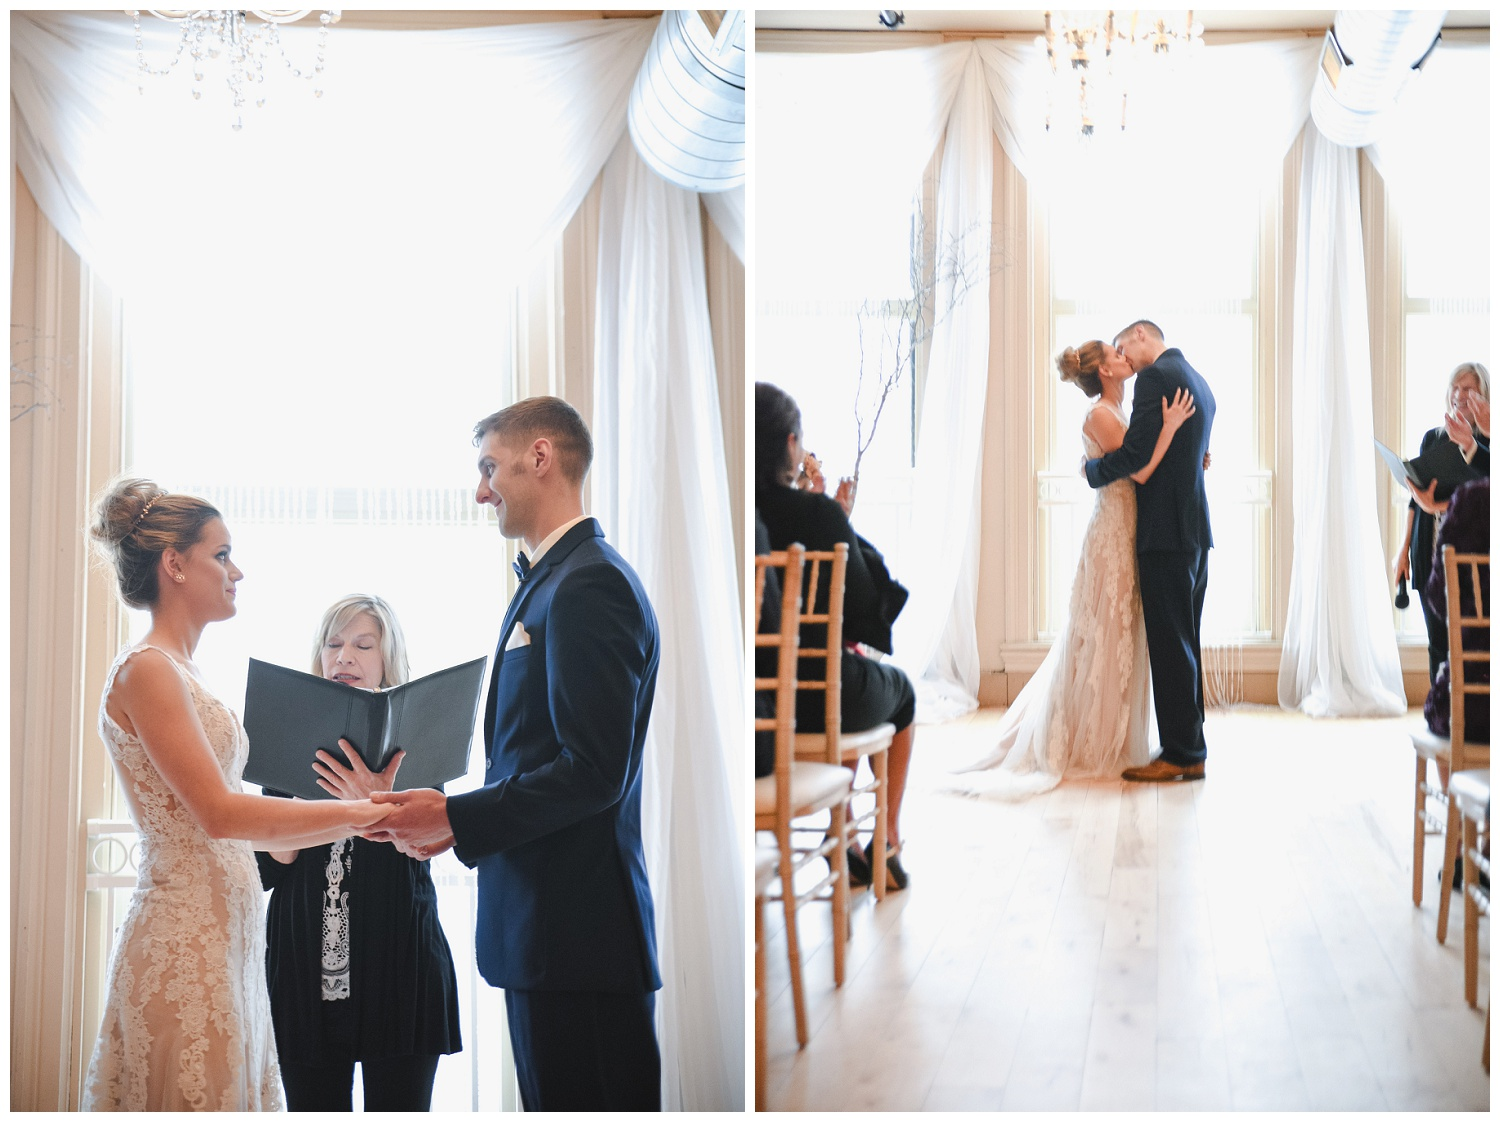 Gianna's Photography Wedding Photographer The Loft at Studio J Stillwater Minnesota